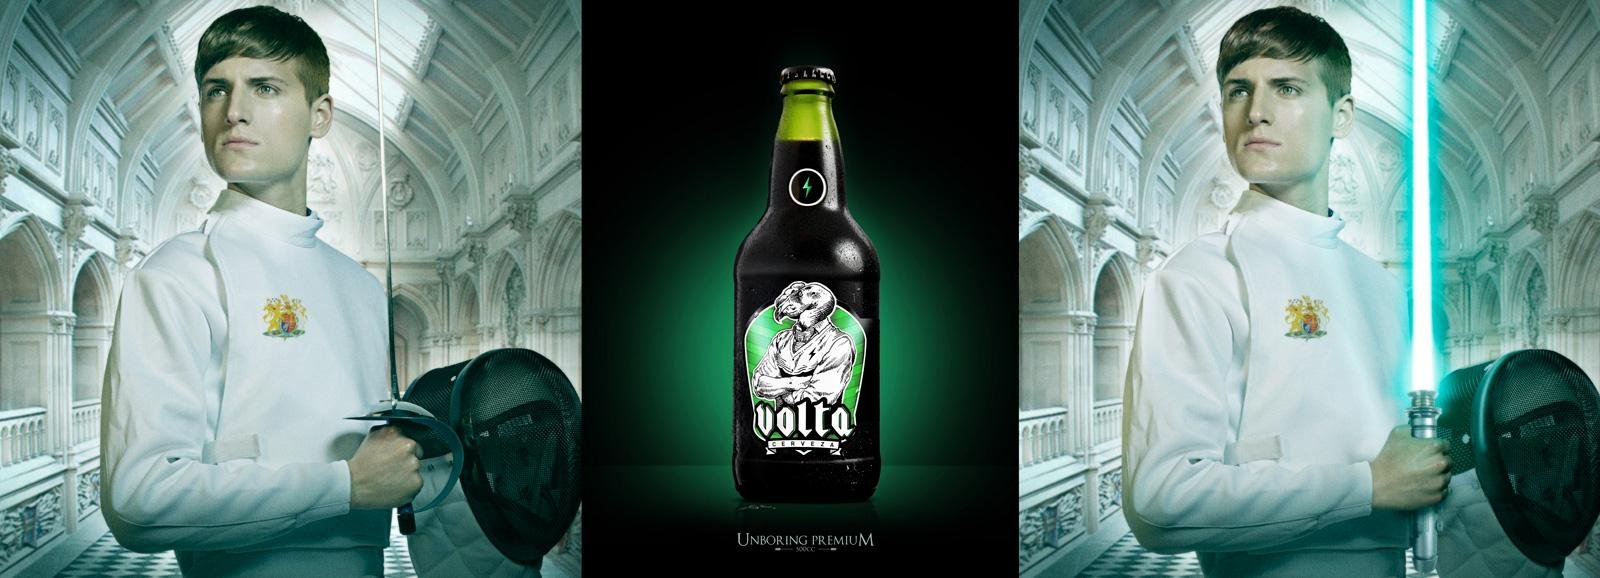 Volta Premium Beer Outdoor Ad -  Sword